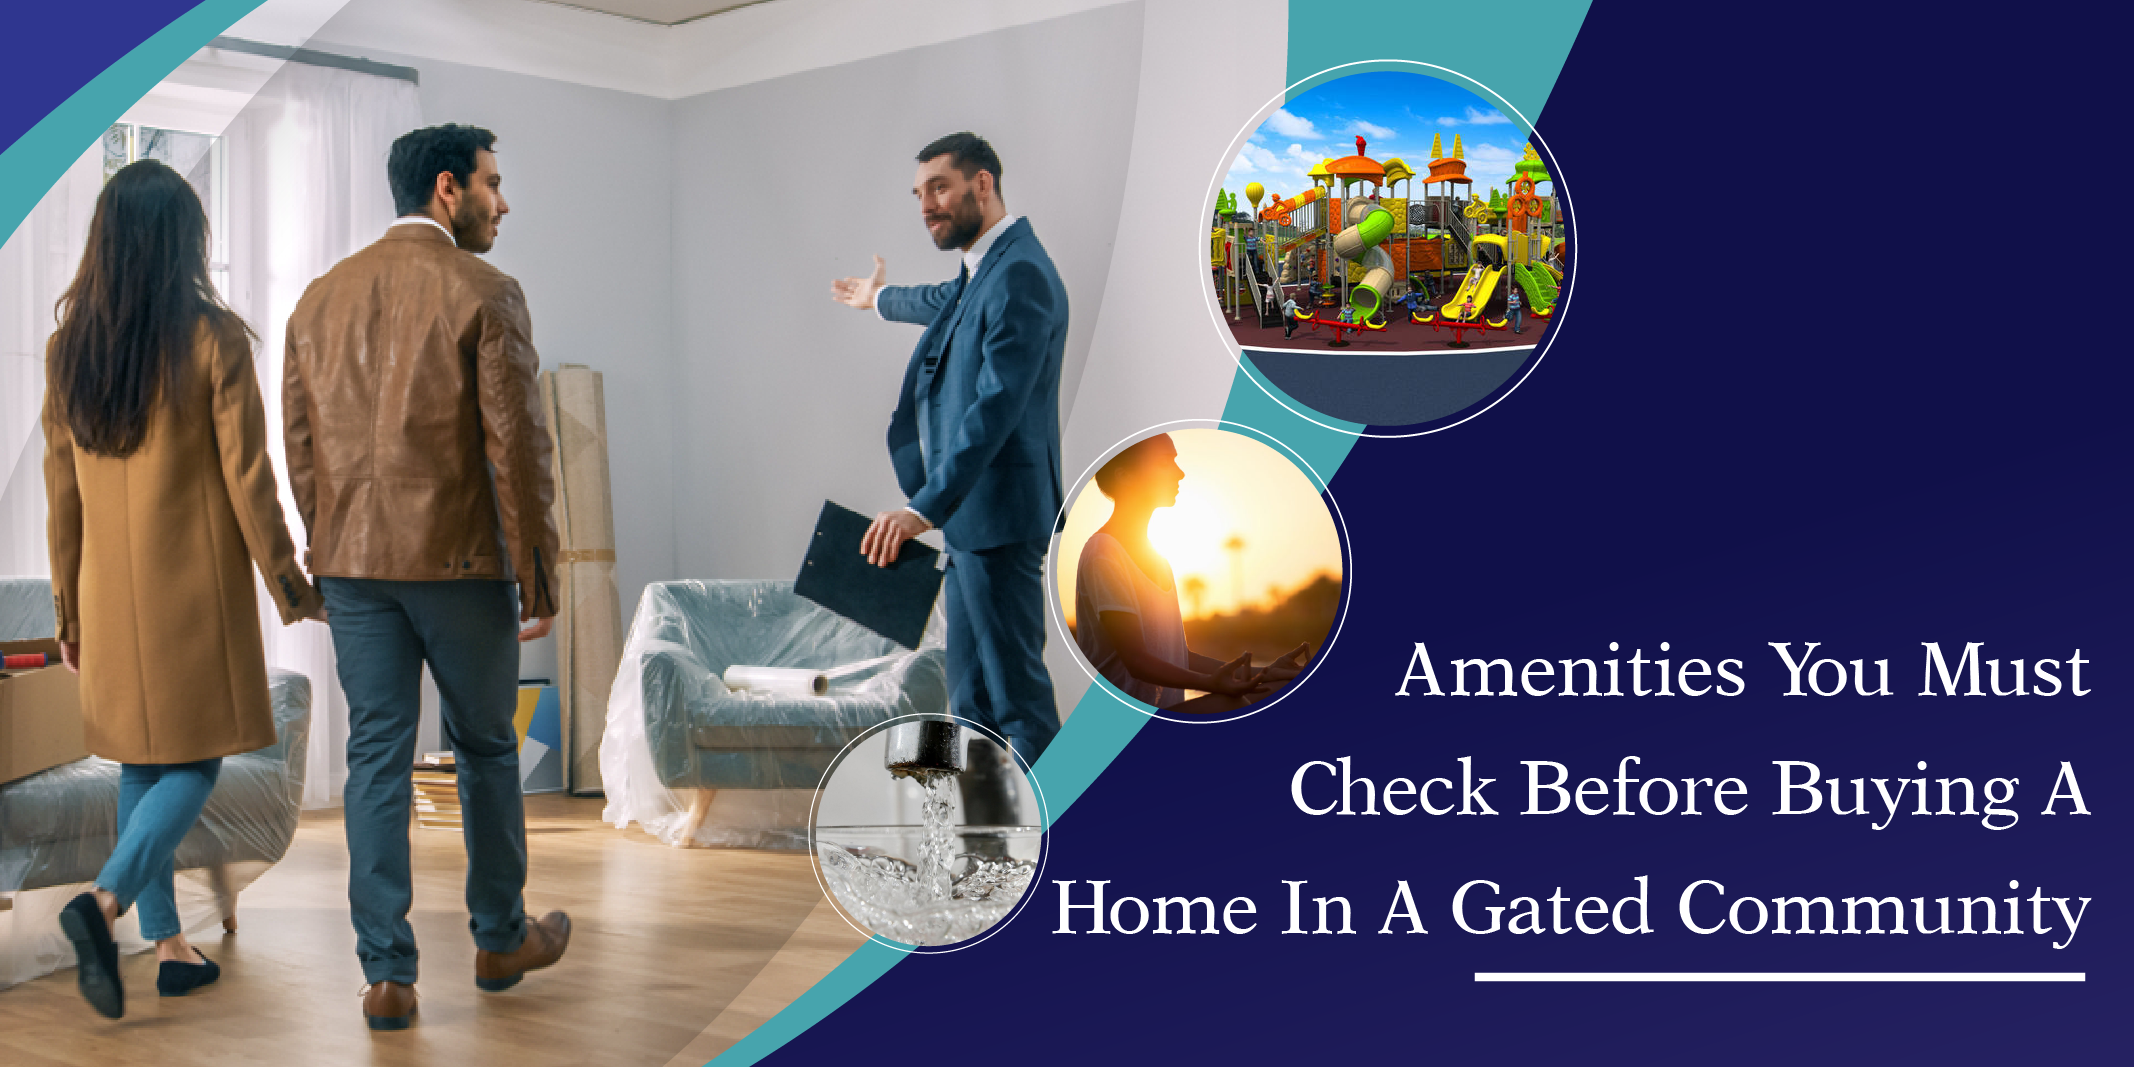 Amenities You Must Check Before Buying a Home in a Gated Community